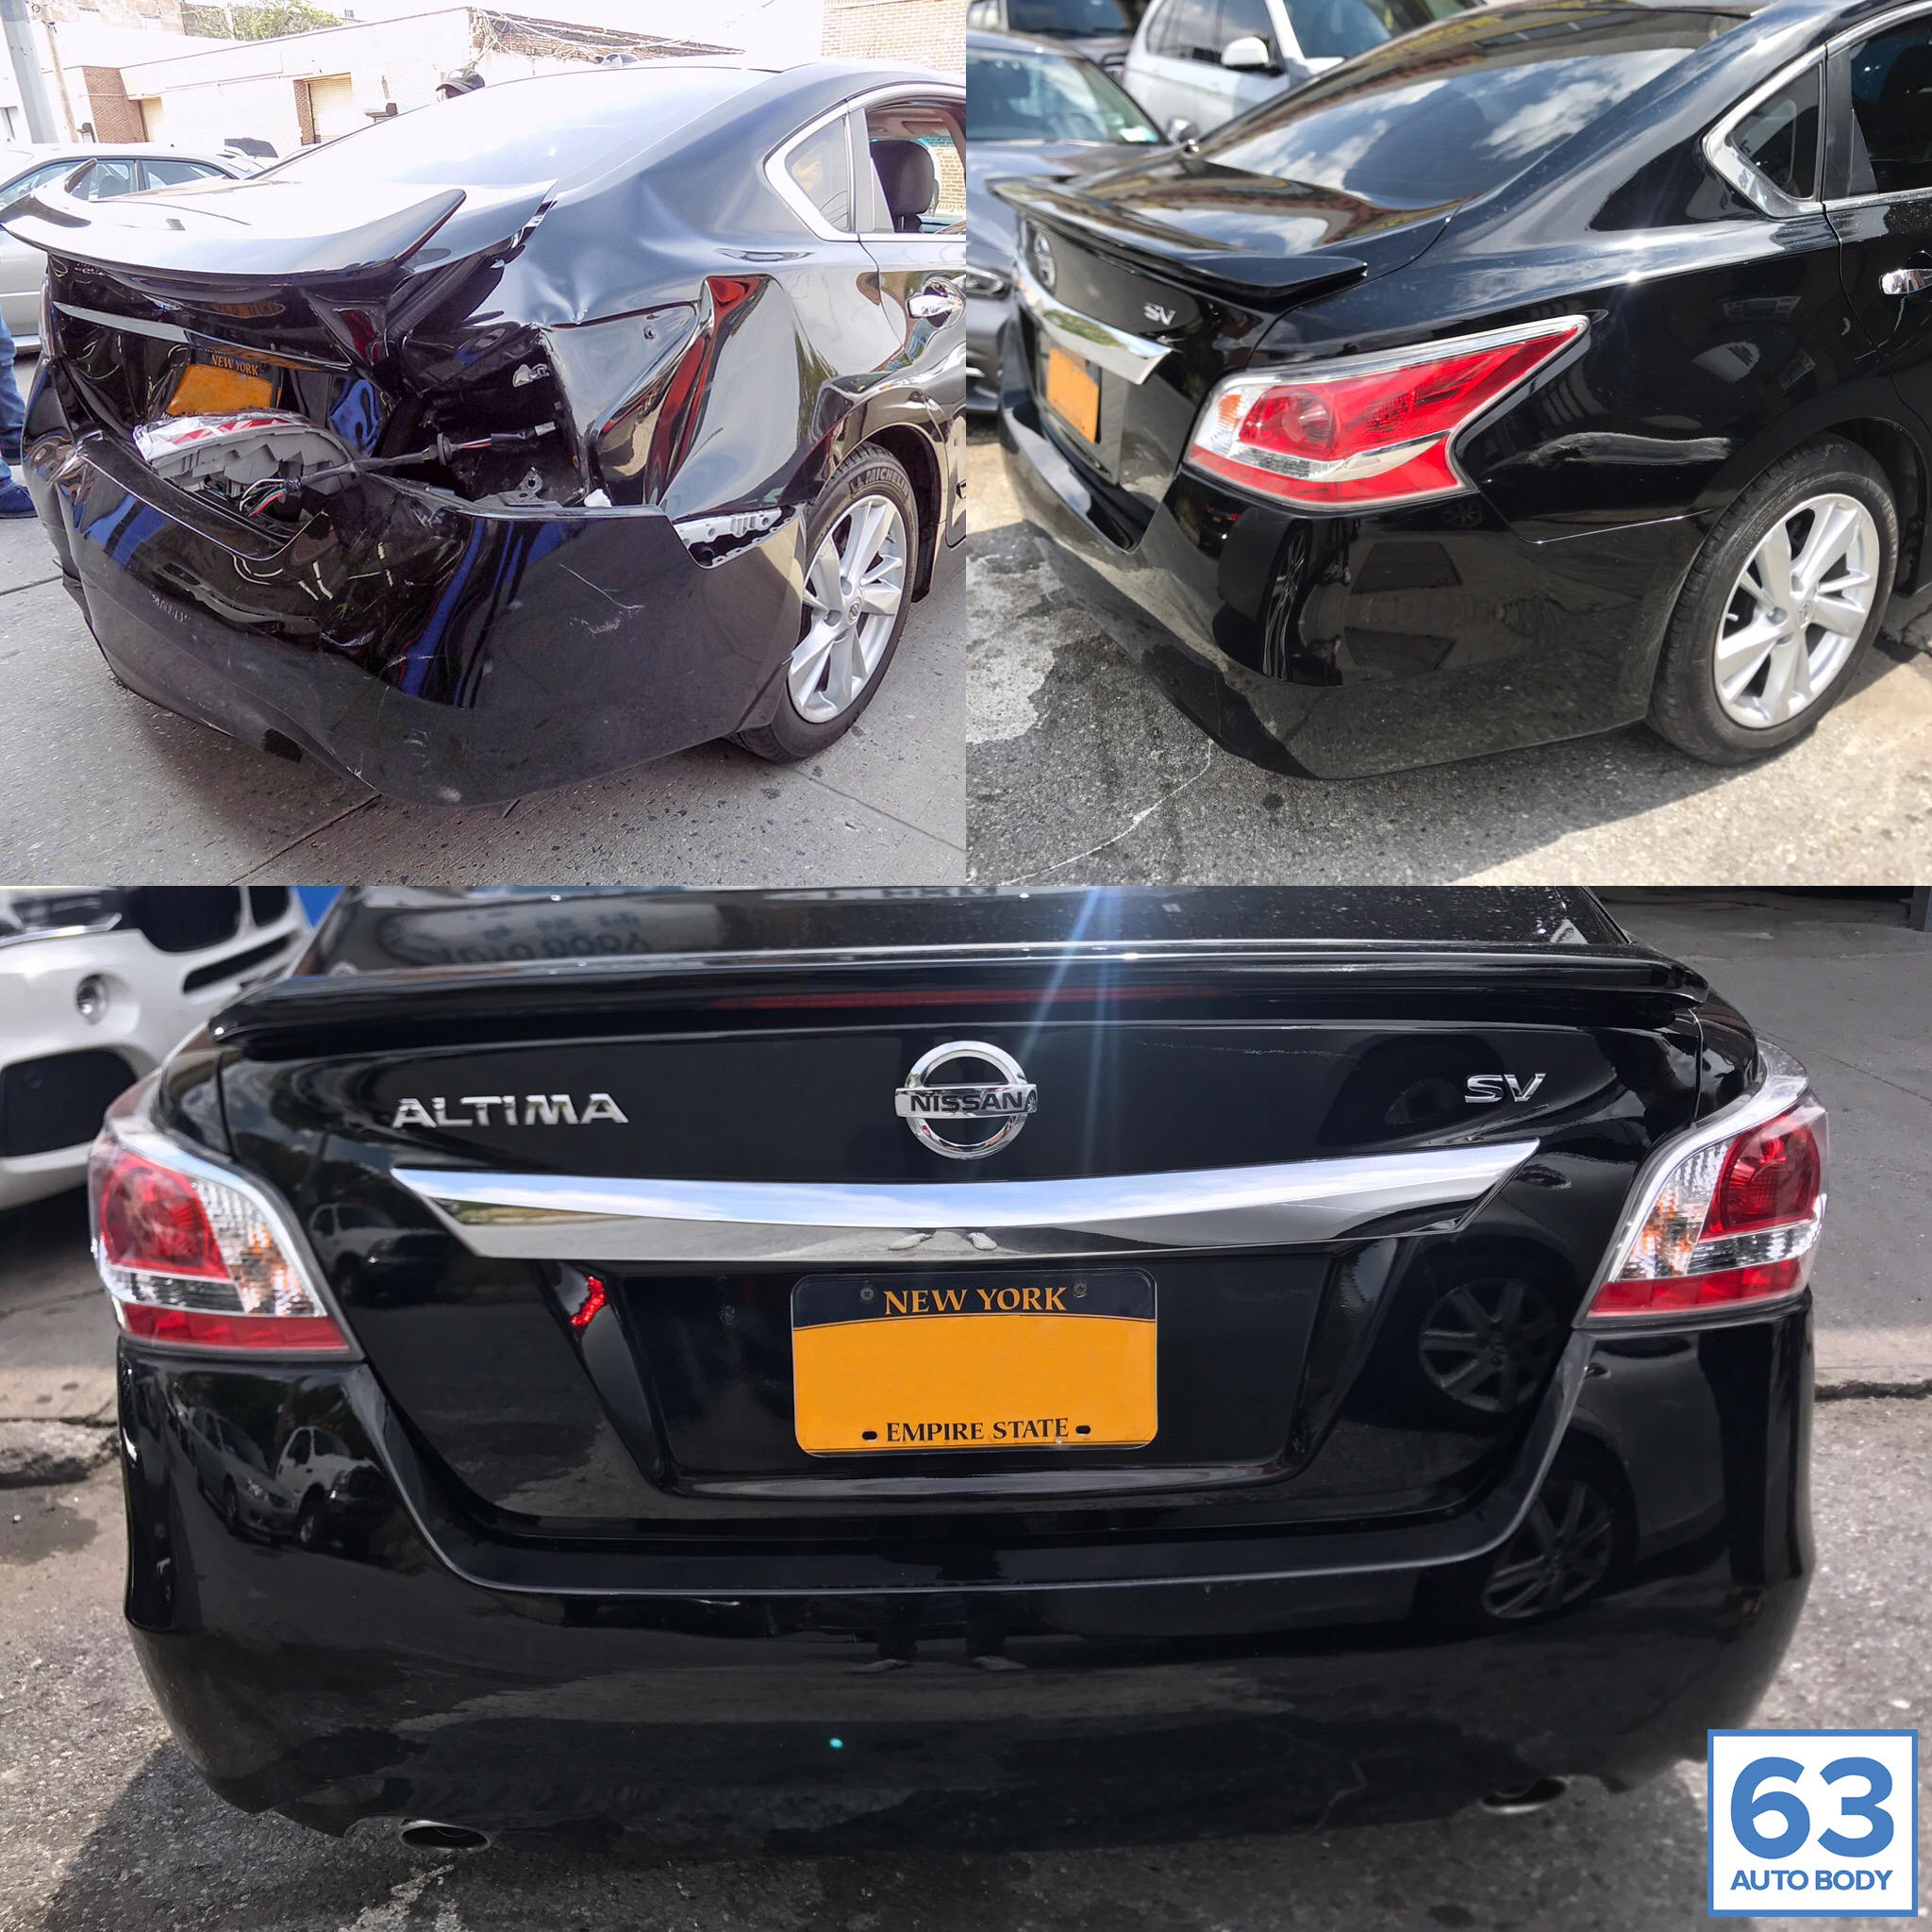 2015 Nissan Altima Rear End.jpg